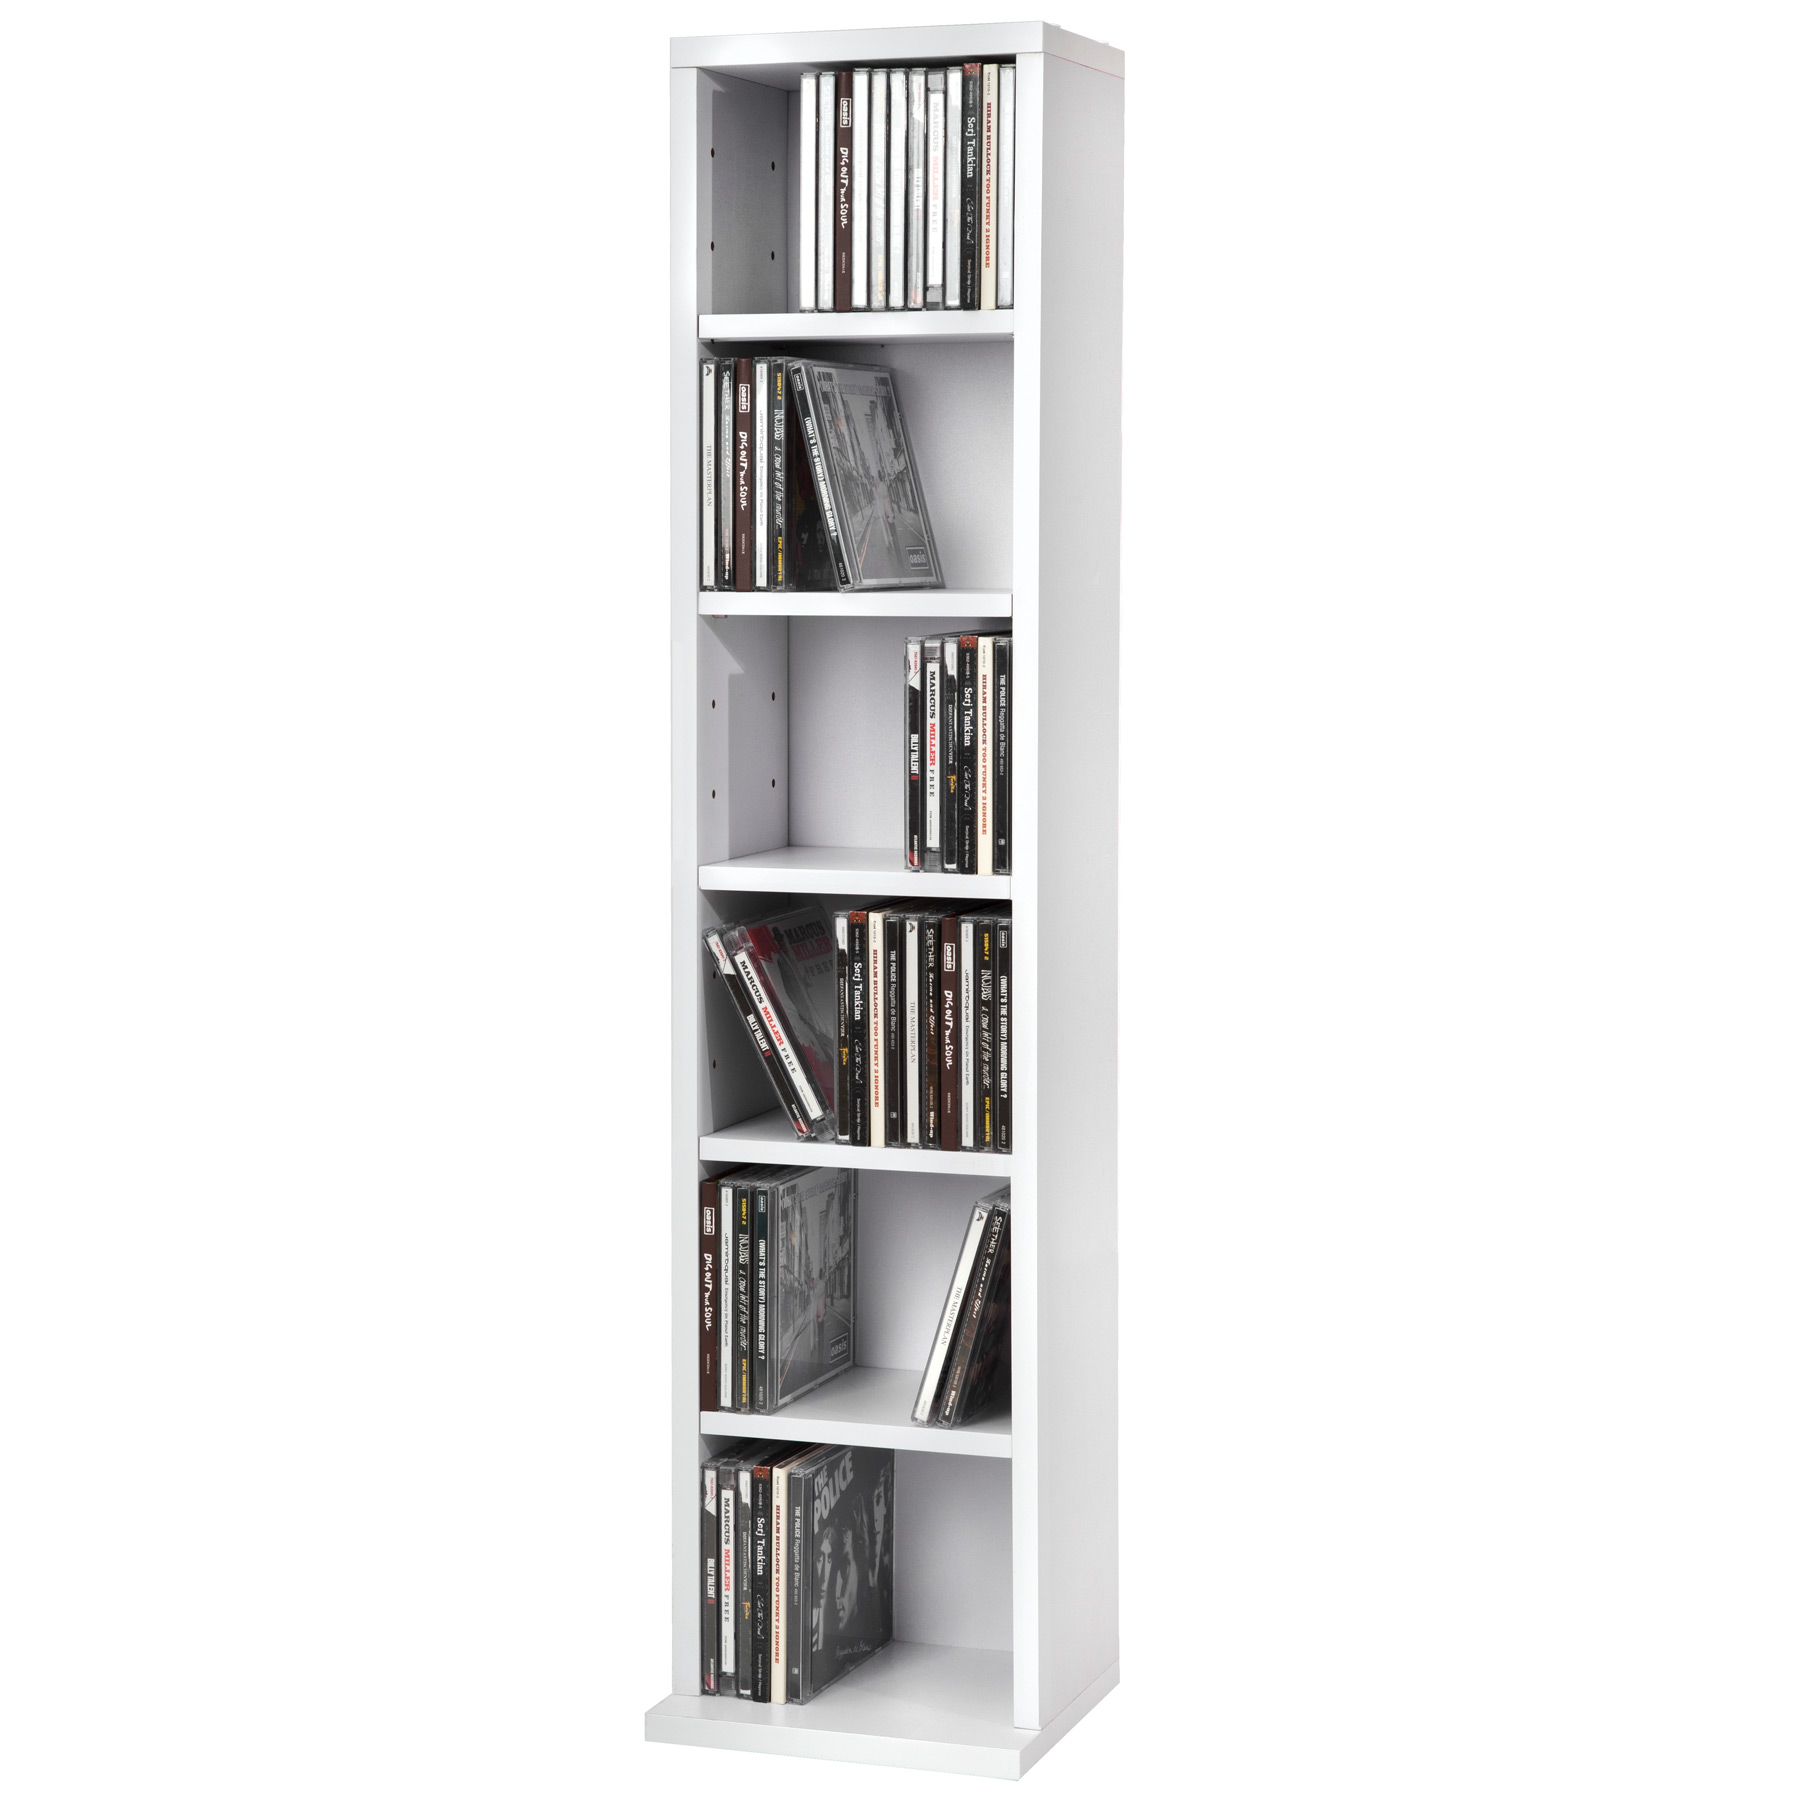 Cd dvd storage tower rack for 102 cds unit shelf organiser archieve wood ebay - Etagere dvd conforama ...